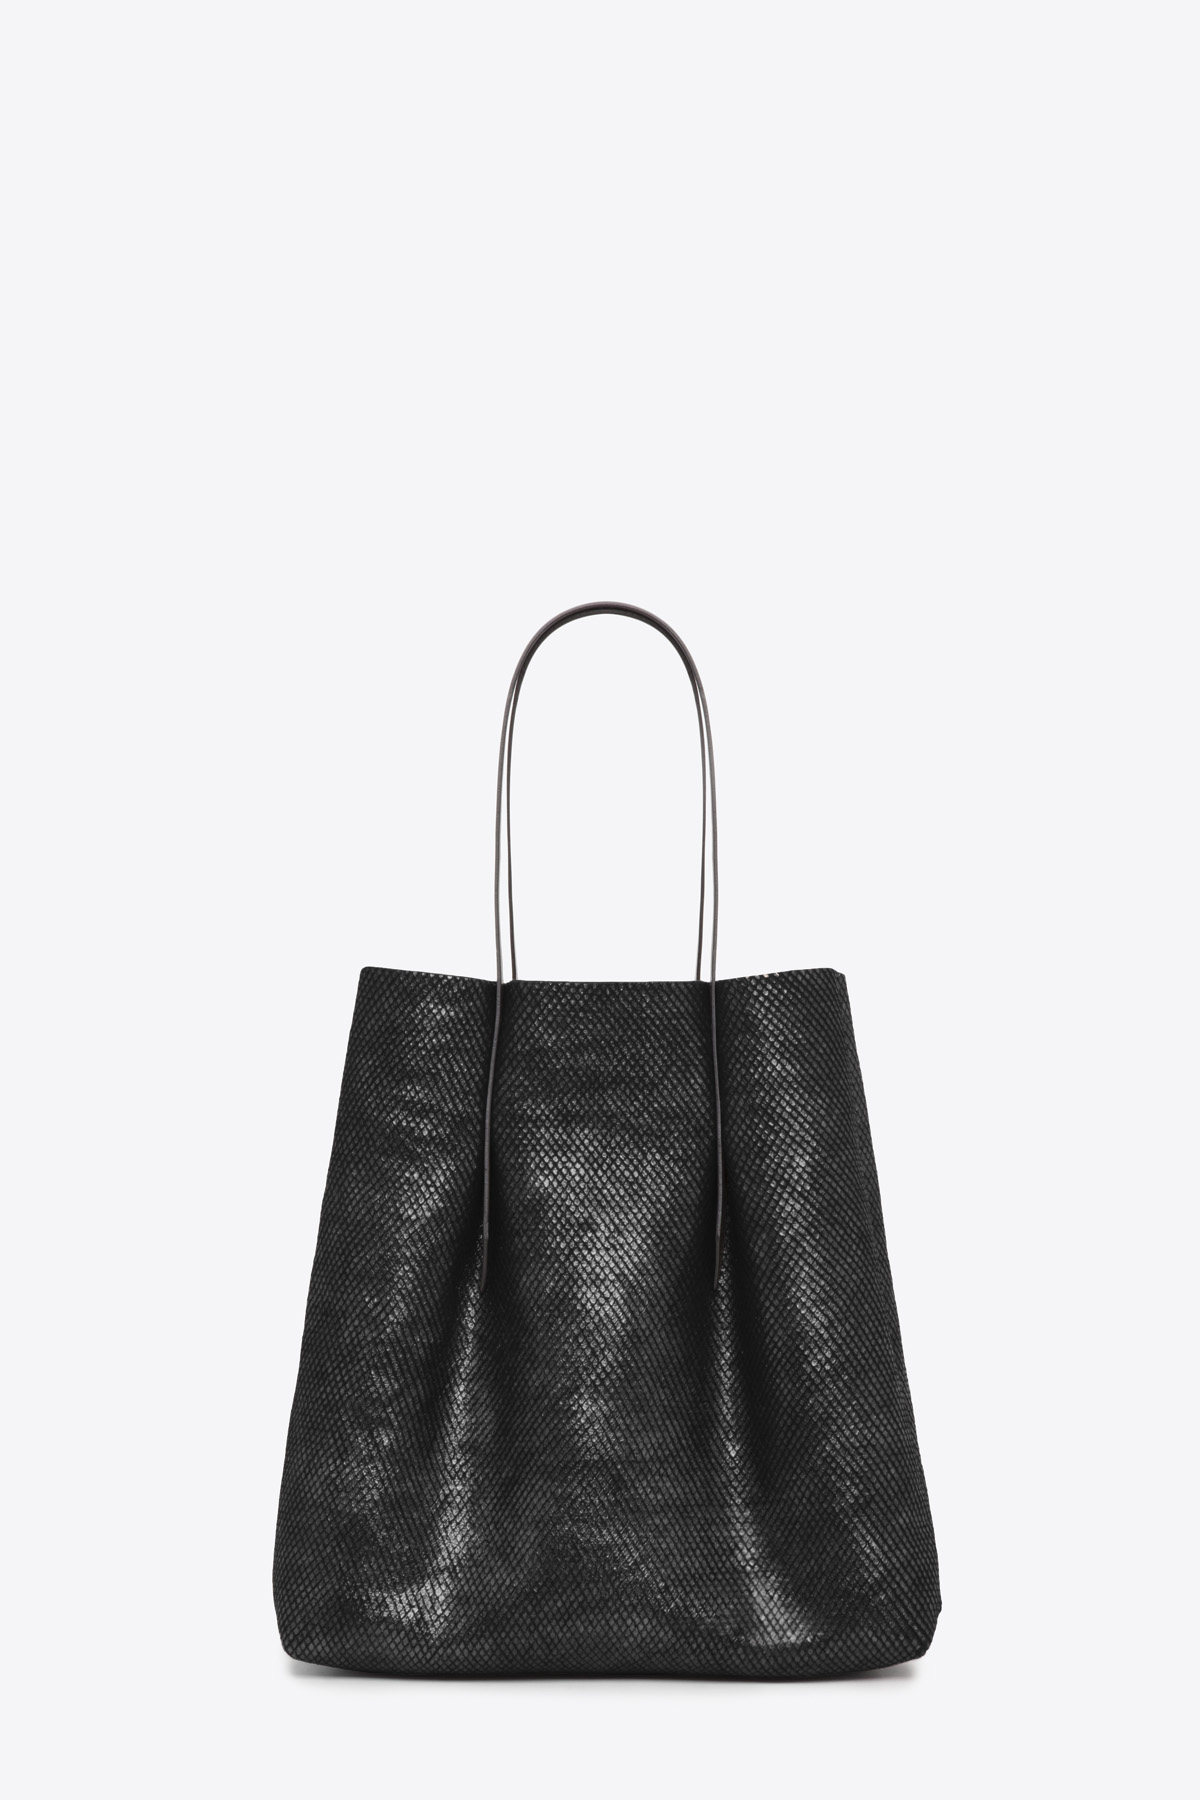 dclr006-shoppingbag-a23-backsnakeblack-back